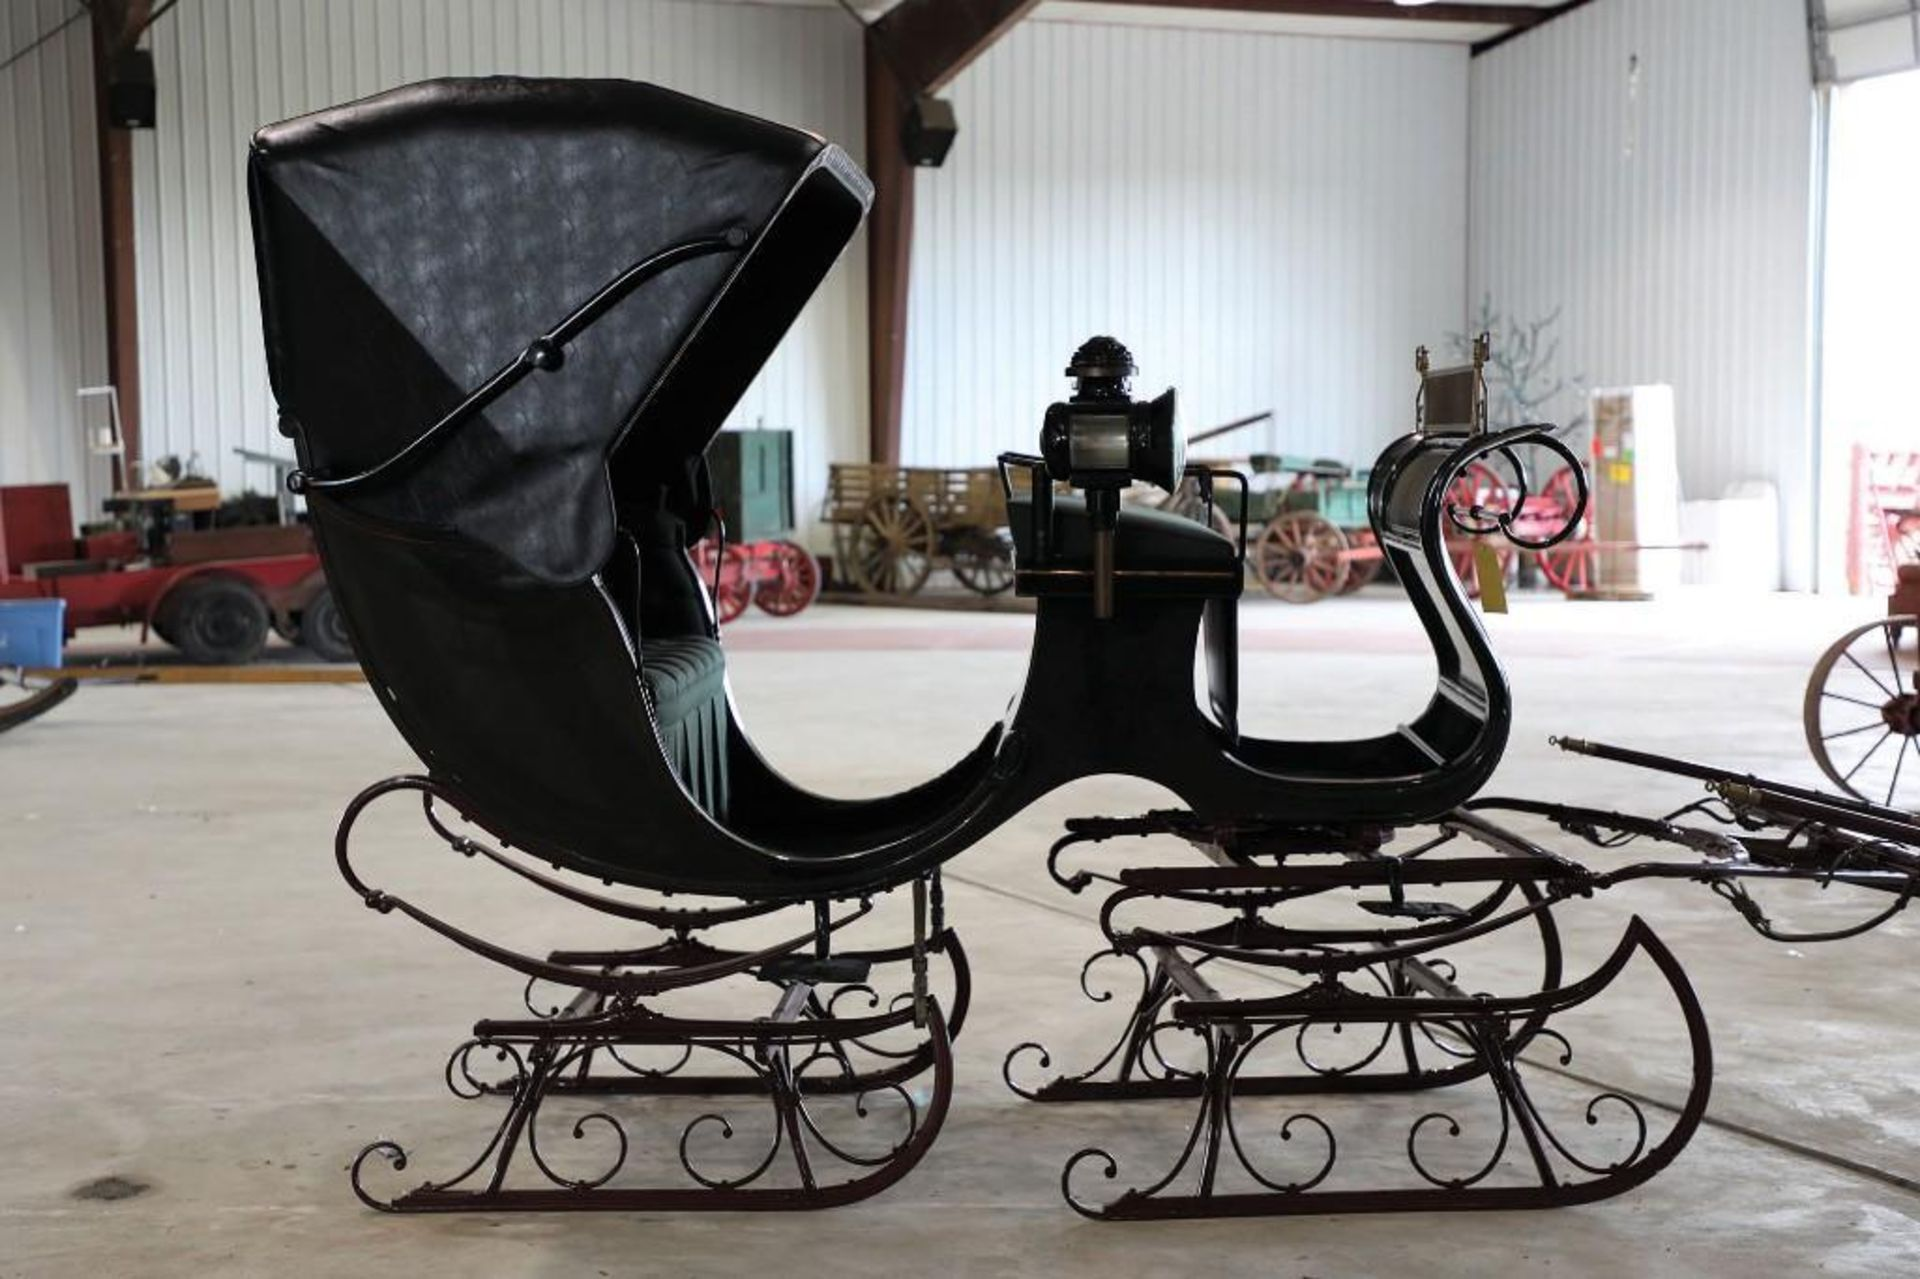 Autotop Sleigh, Made in Troy, NY. Lamps will sell separate - Image 2 of 4